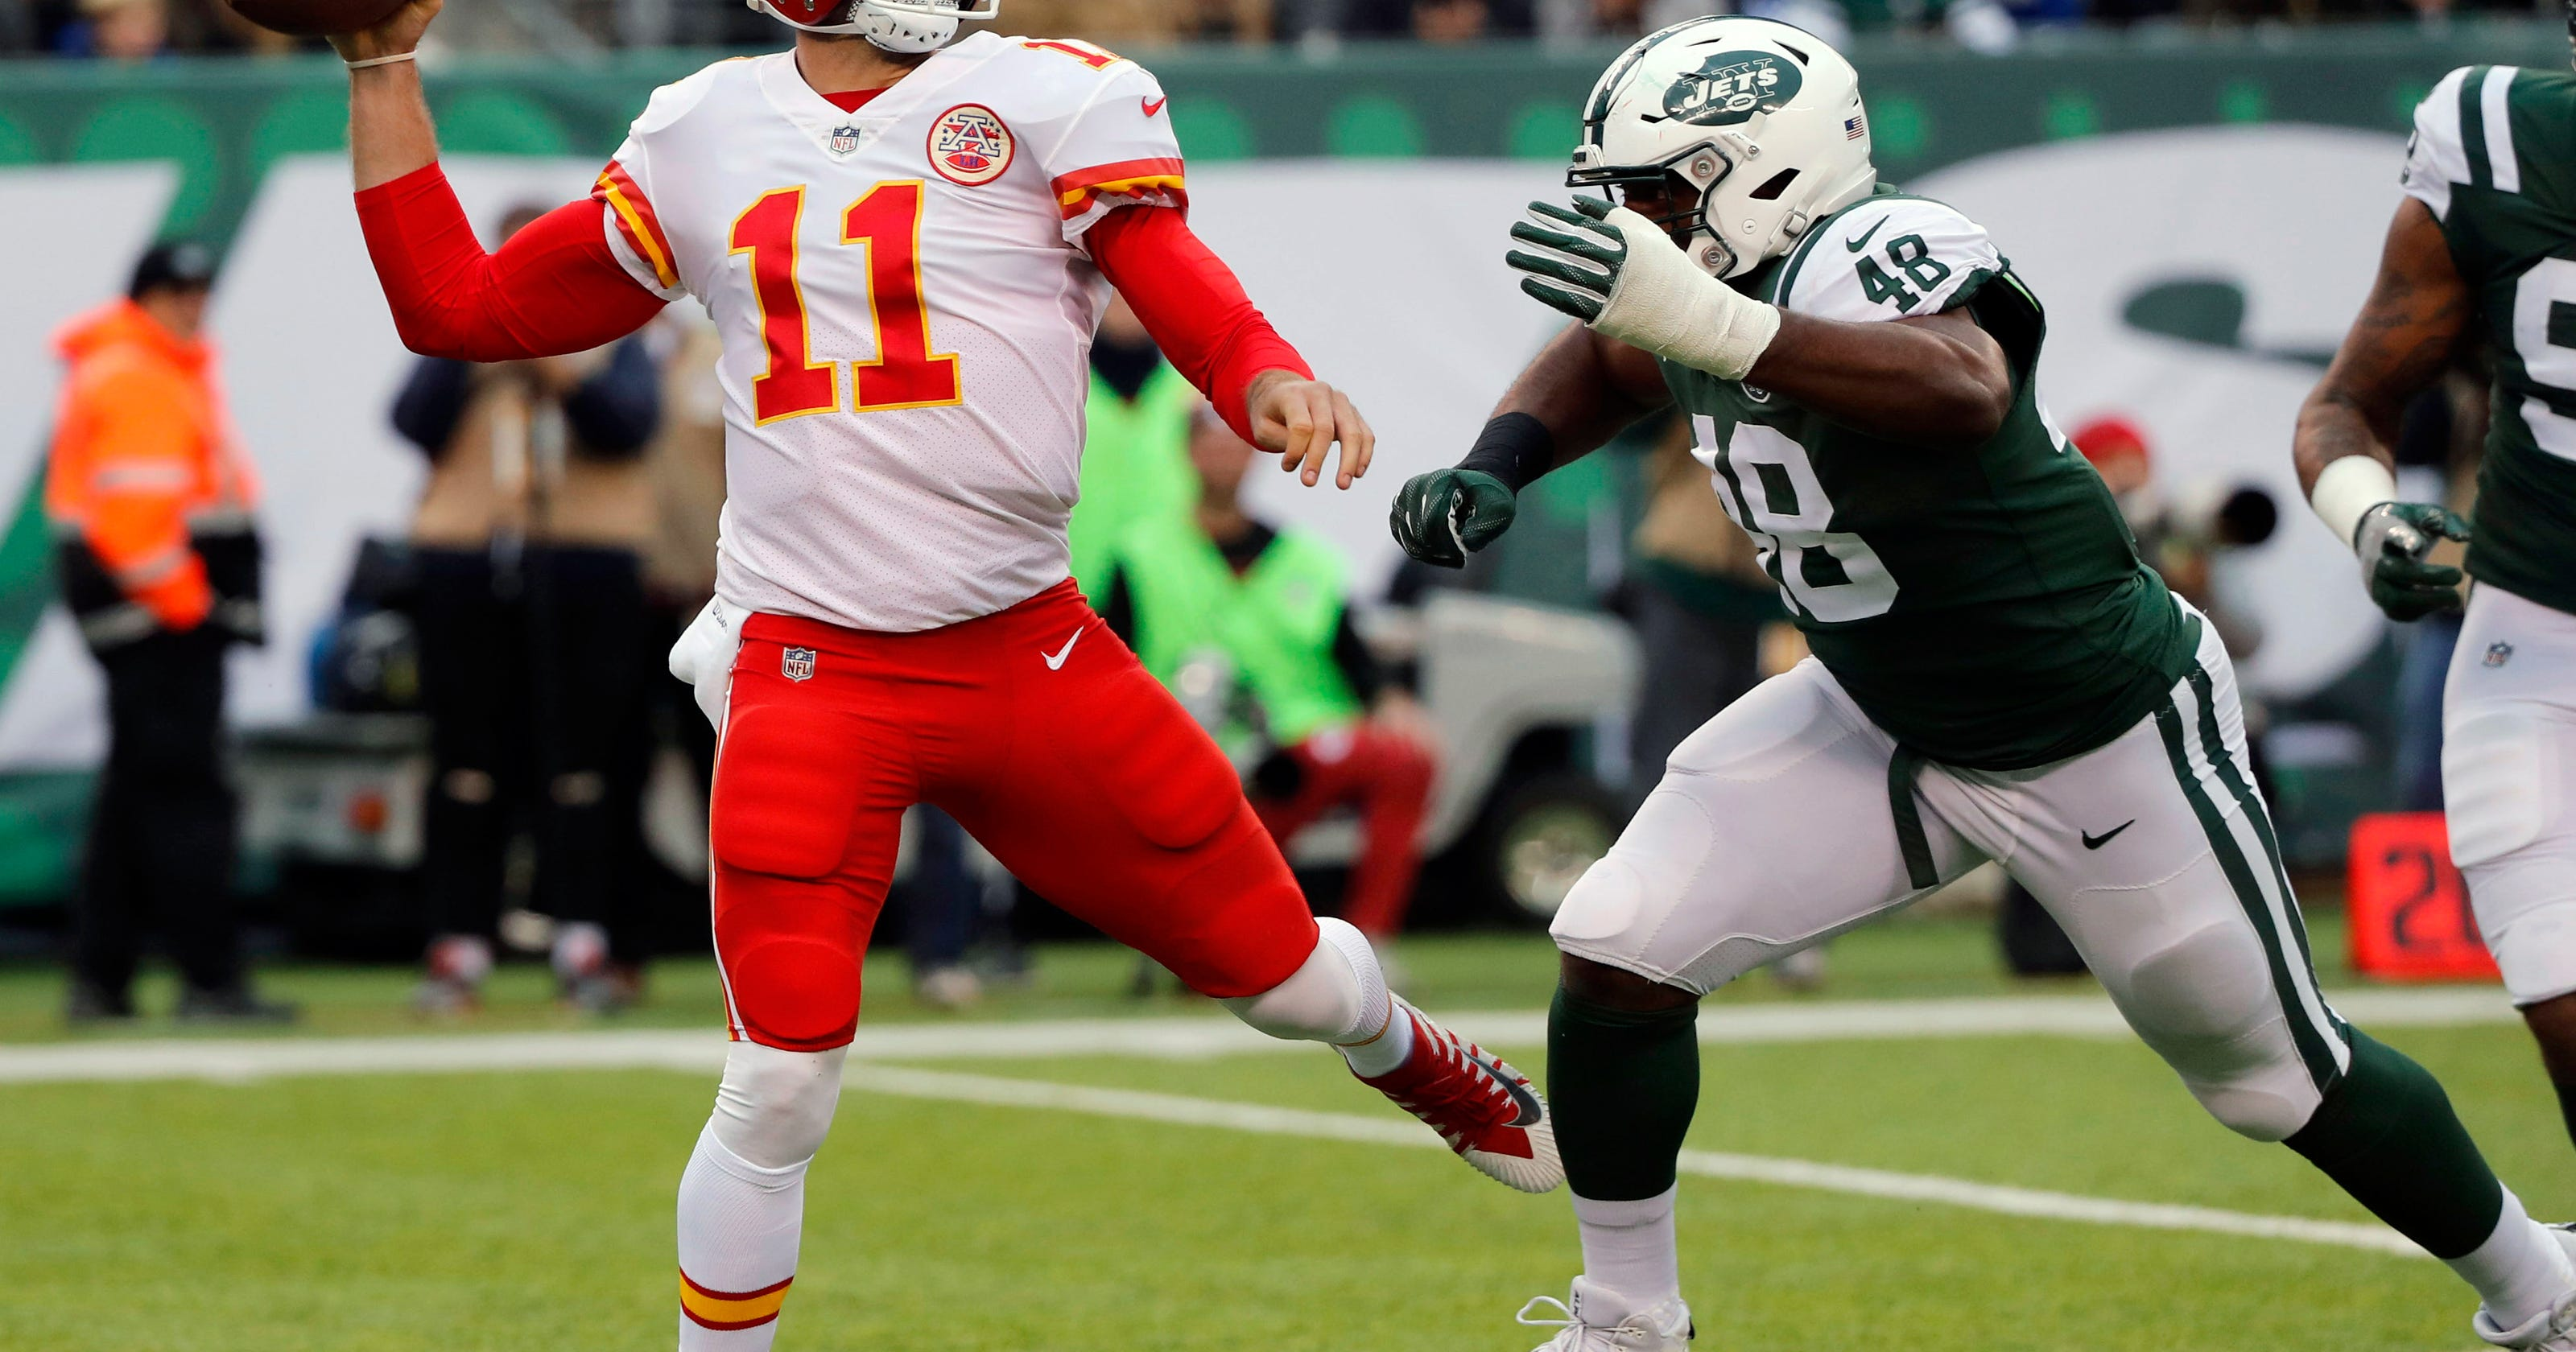 516a3718aab McCown, Chiefs' poor discipline lead Jets to wild 38-31 win